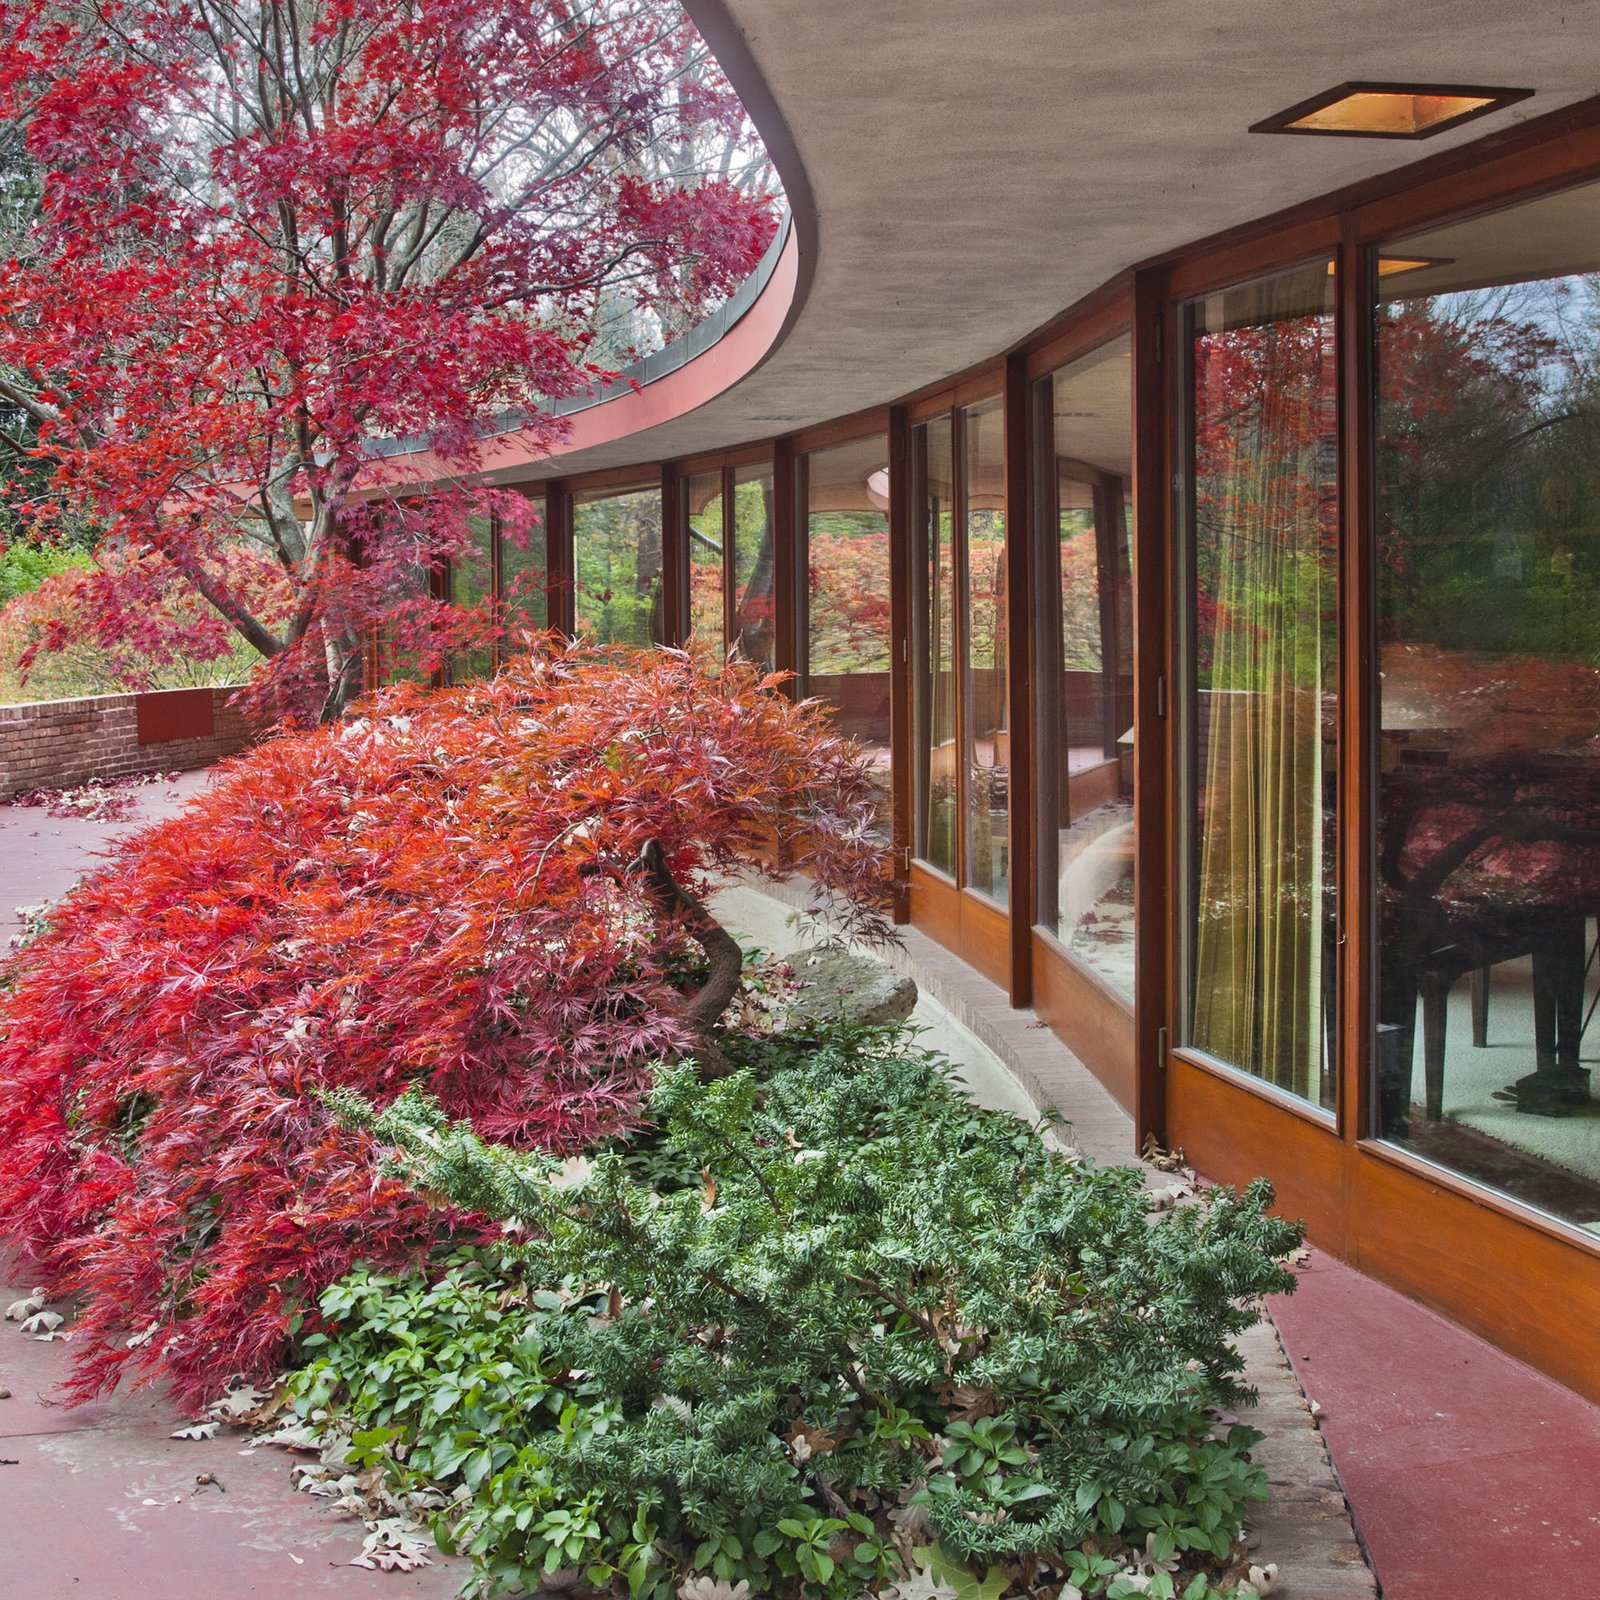 The house is one of about 60 so-called Usonian houses that Wright designed for middle-income clients starting in 1936. Image courtesy of Wright Auction House.  Photo 5 of 11 in Dwell Reflects on Frank Lloyd Wright in Honor of the 150th Anniversary of His Birth from Accessible Frank Lloyd Wright House in Illinois Is Reborn as a Museum